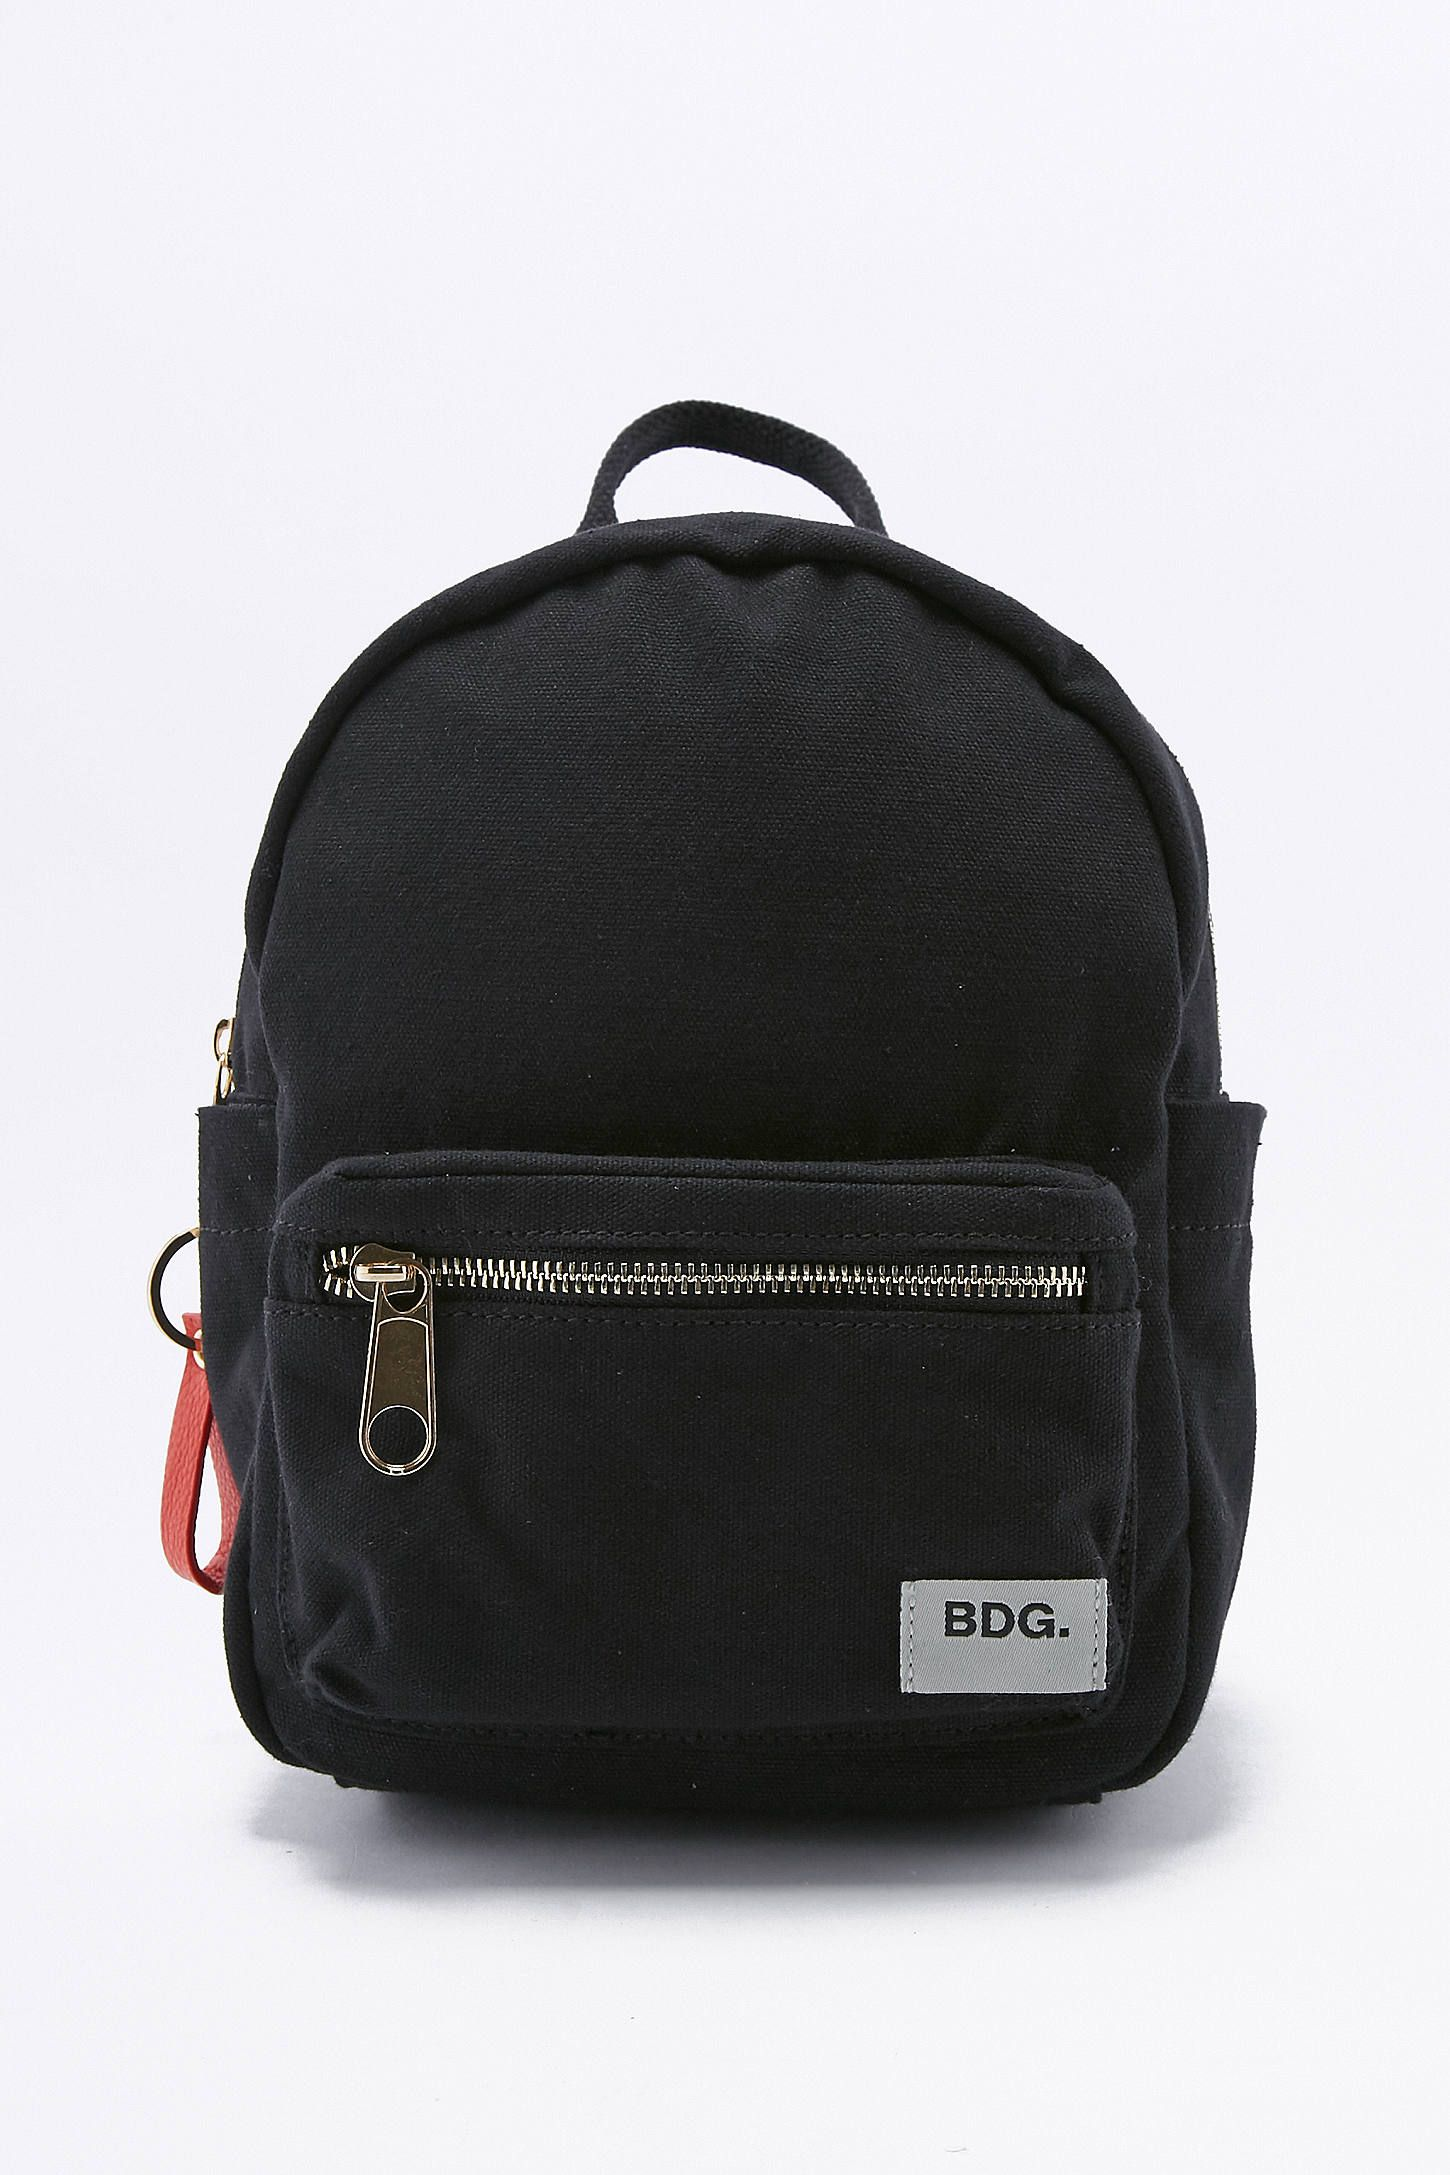 b5d3457530 Shop BDG Canvas Mini Backpack at Urban Outfitters today. We carry all the  latest styles, colours and brands for you to choose from right here.